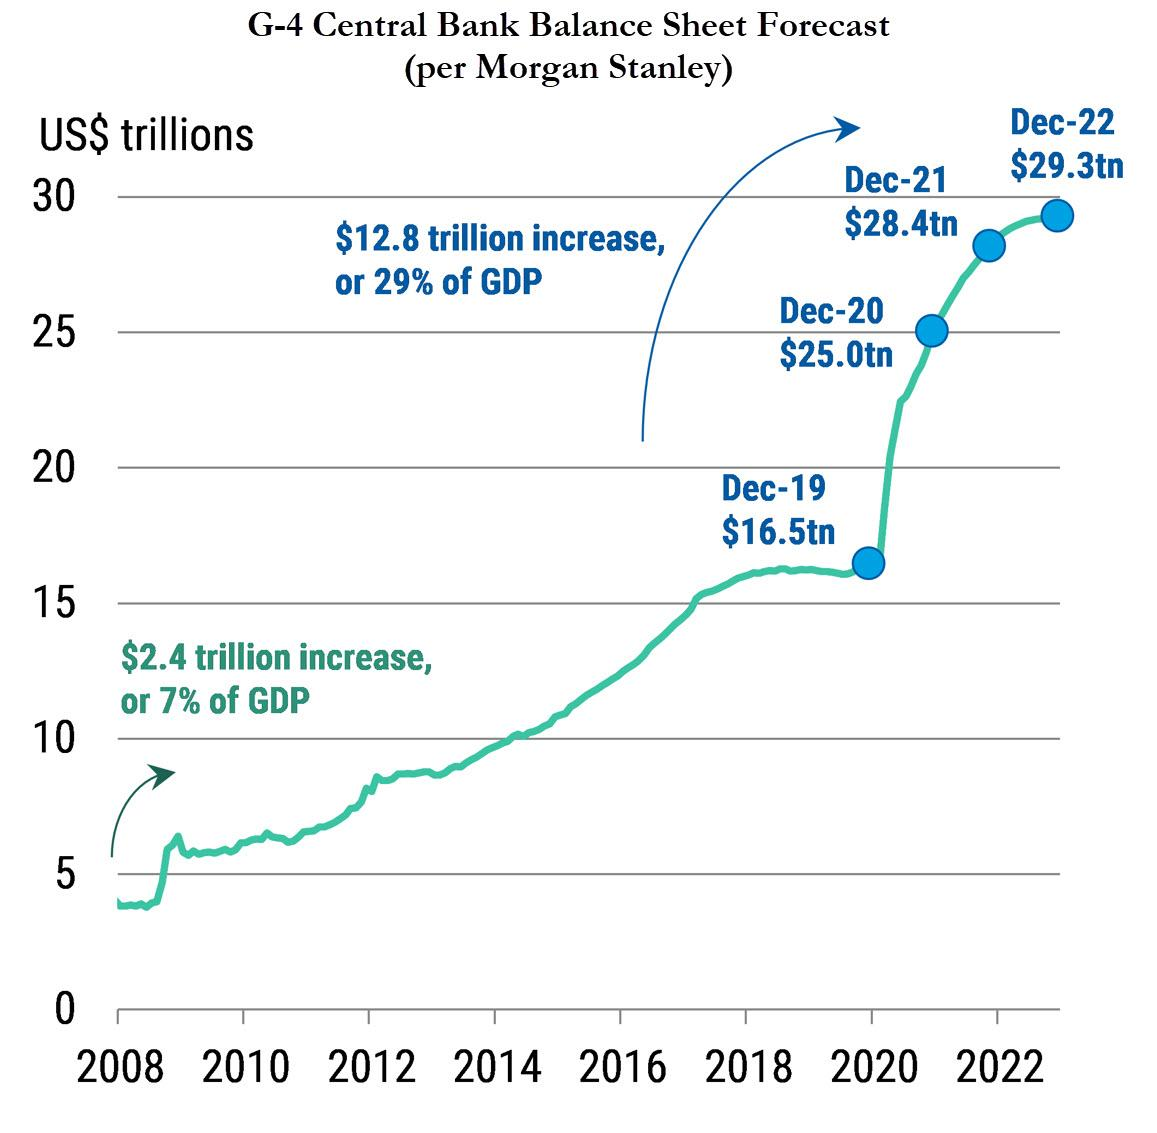 Central Banks To Add Liquidity Worth 0.66% Of Global GDP On Average Every Month In 2021